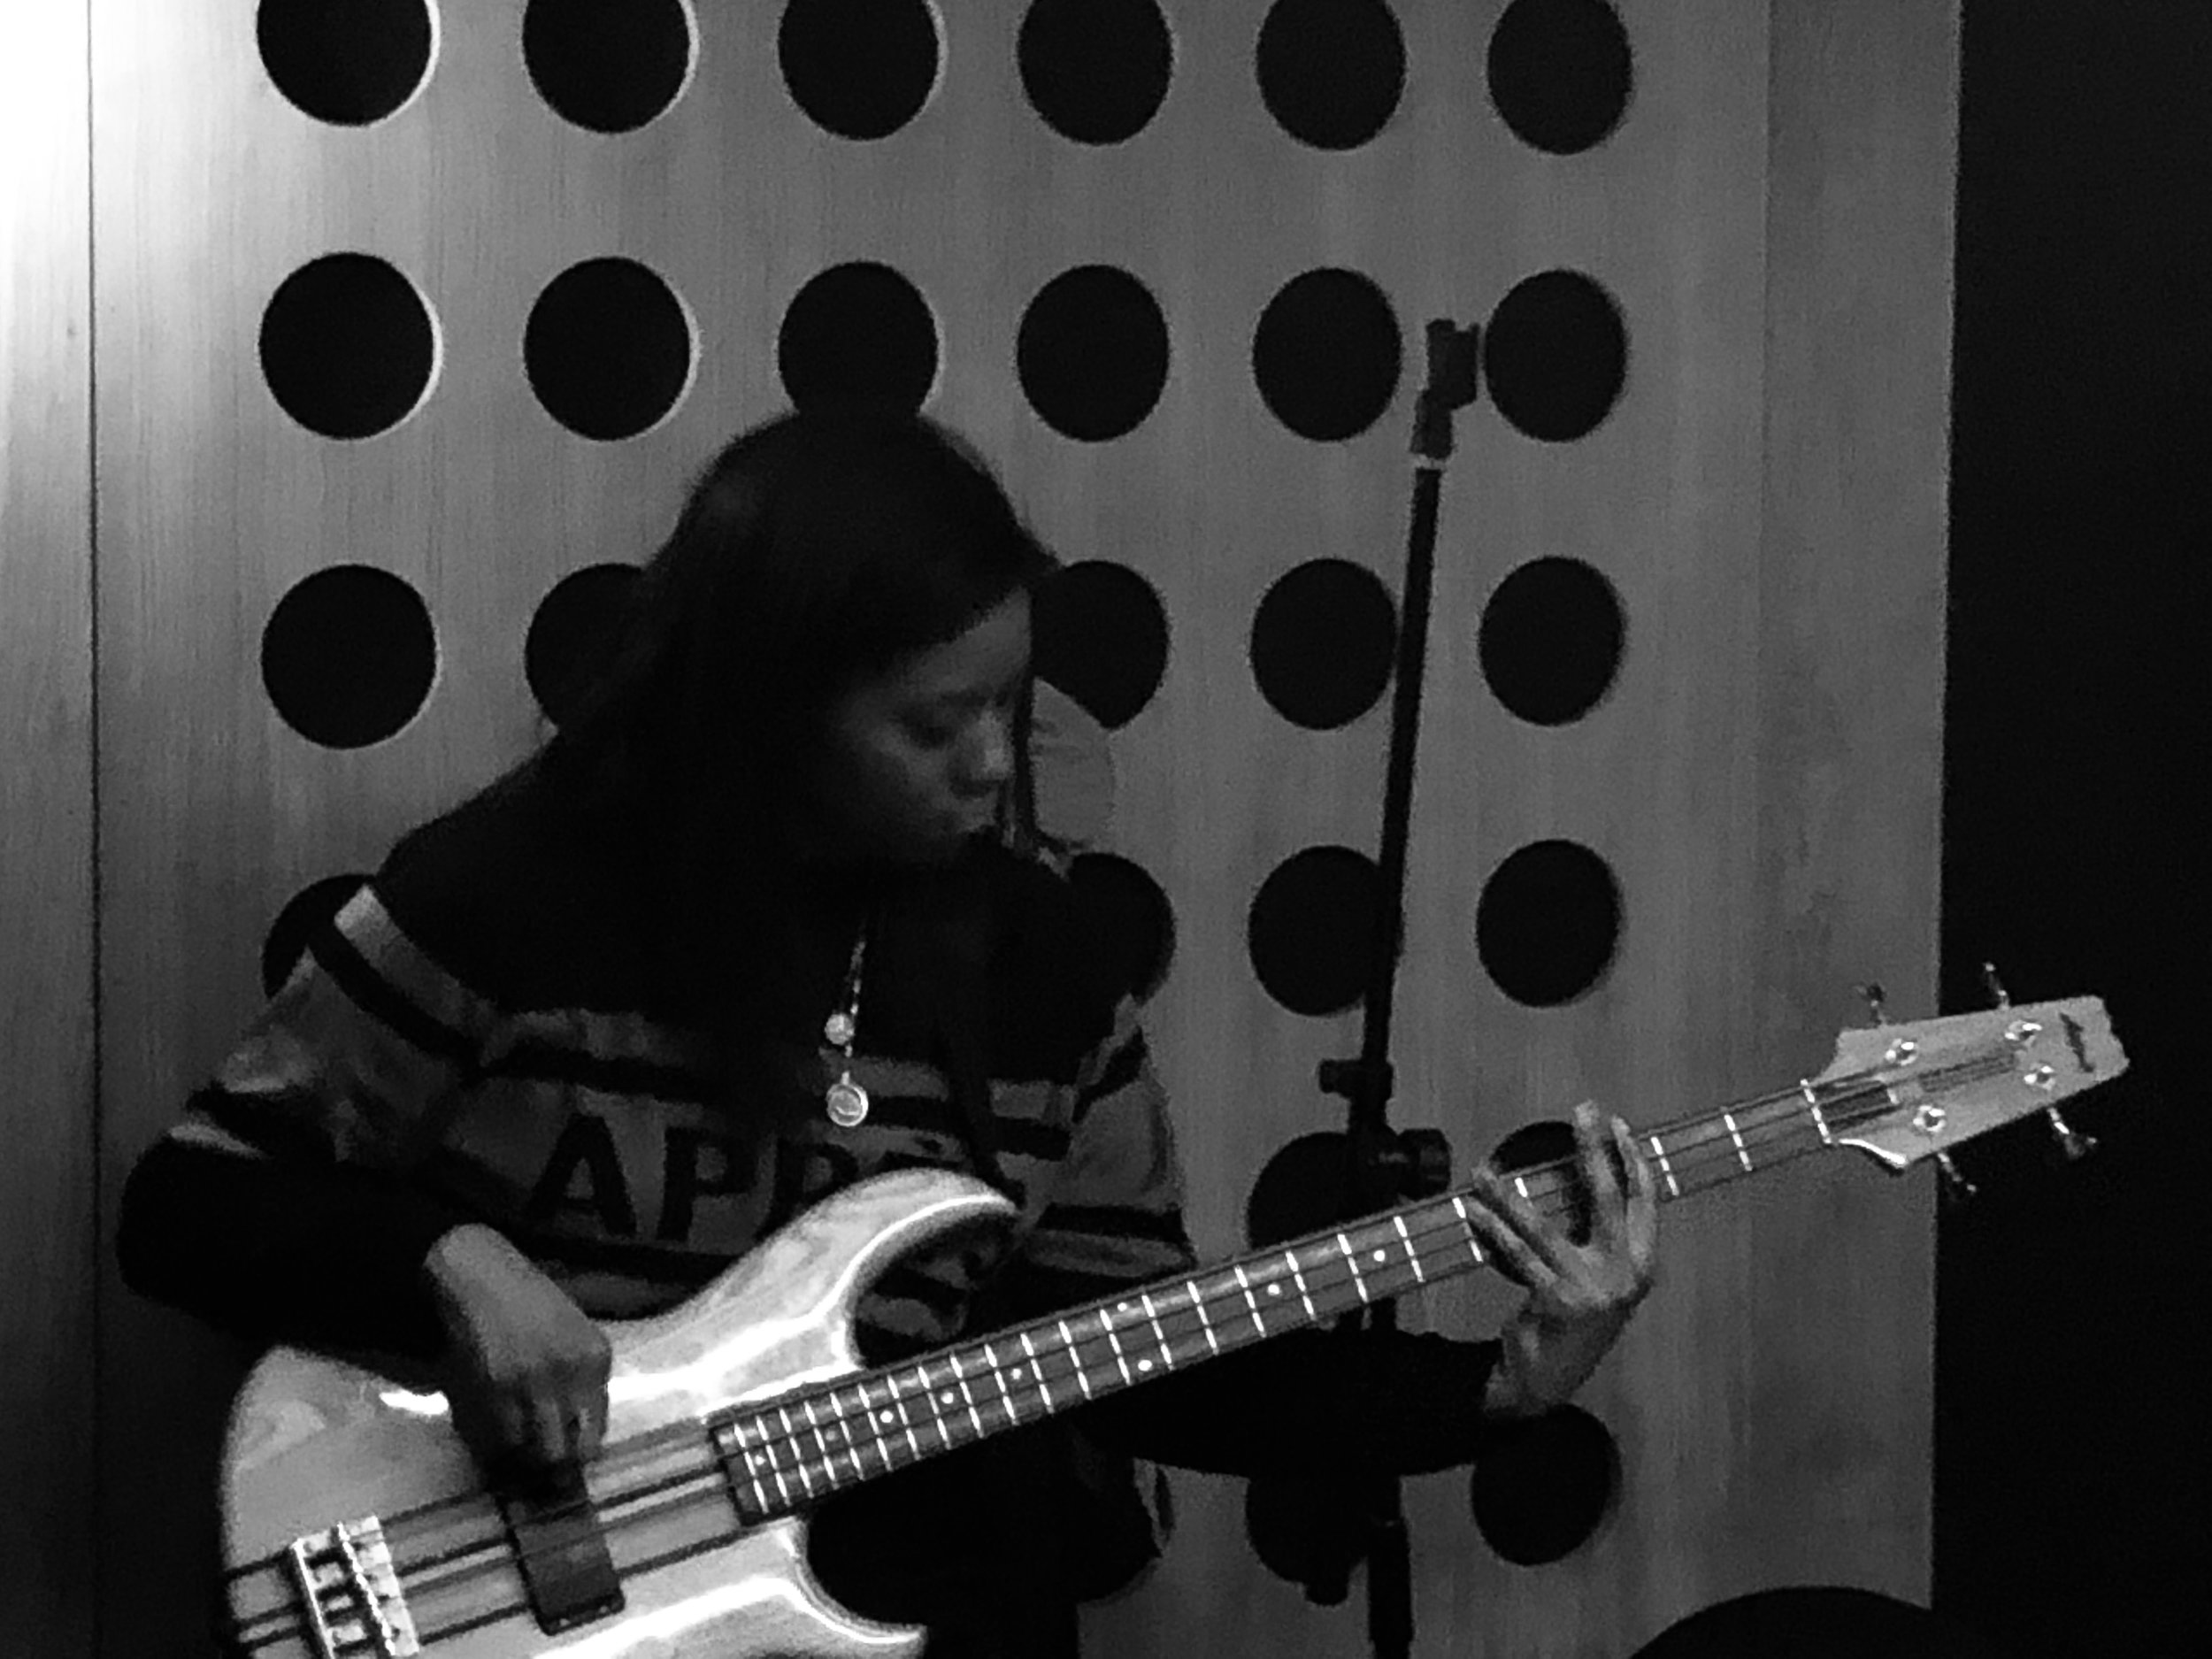 Nicky on bass focussing hard